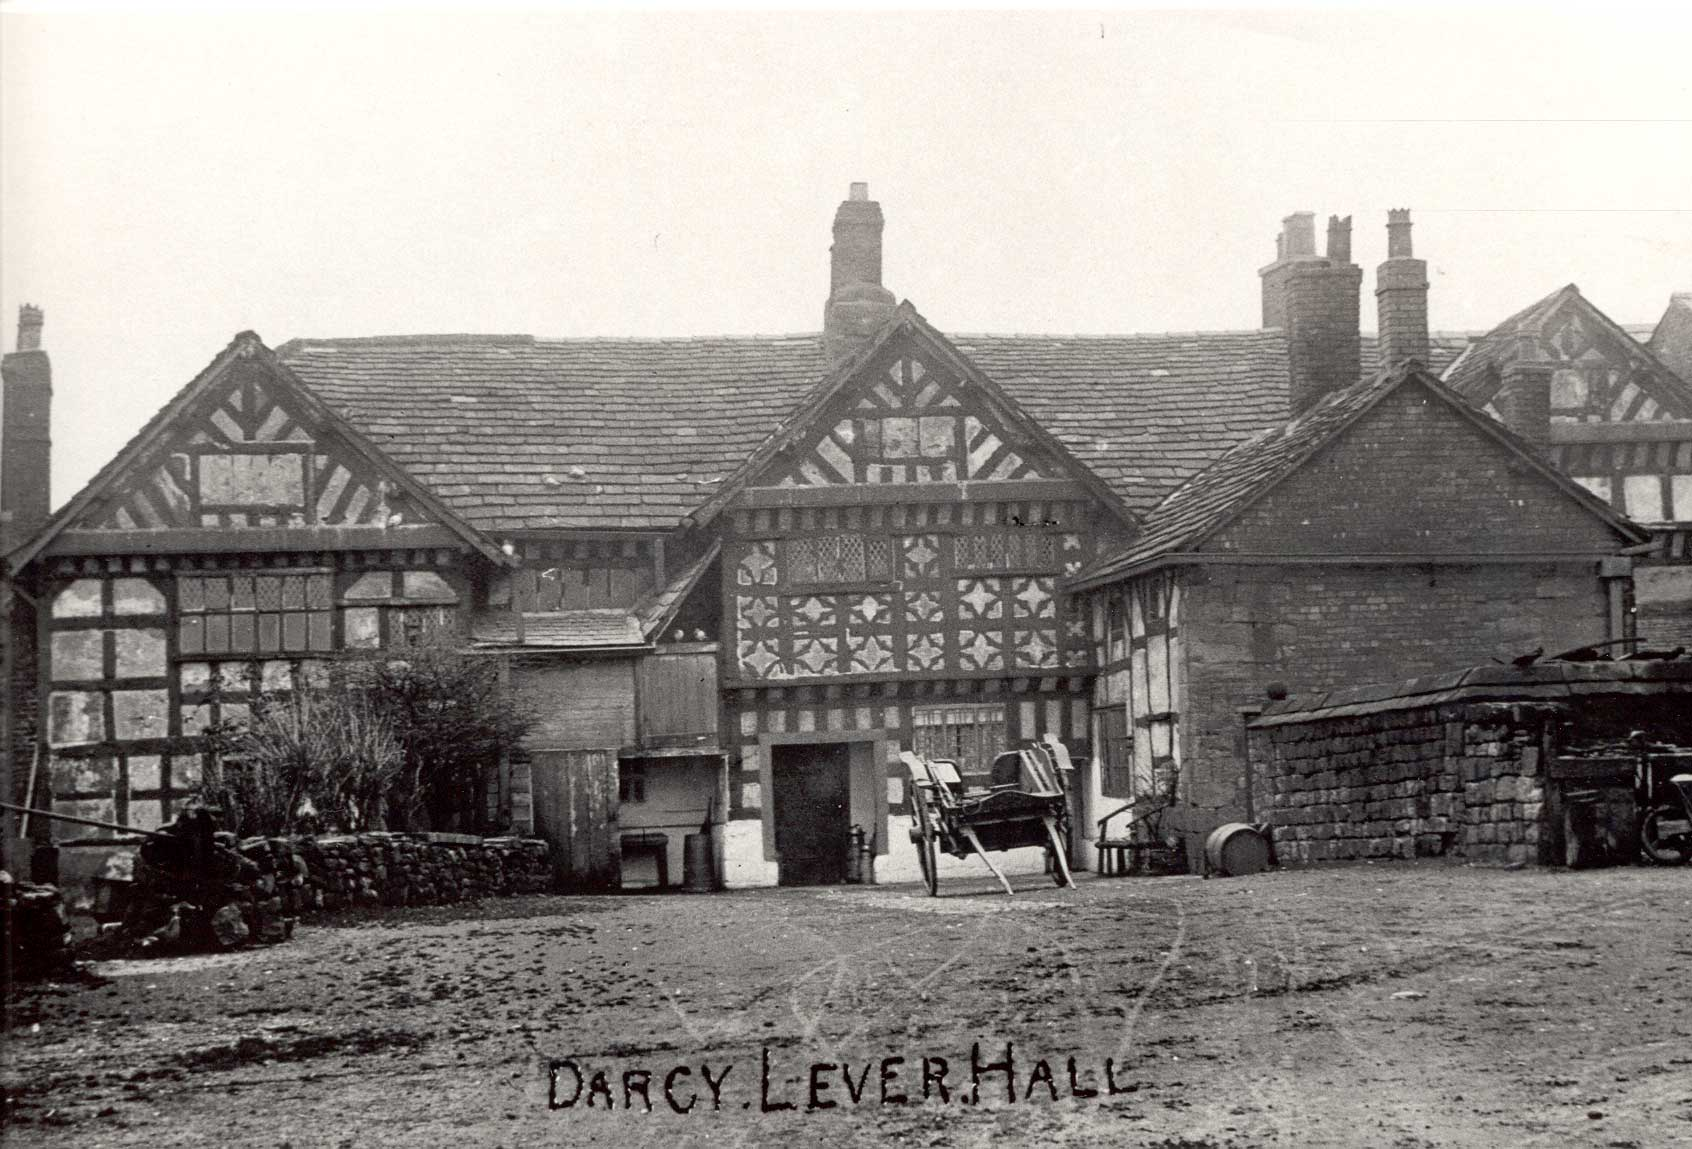 Darcy Lever Old Hall